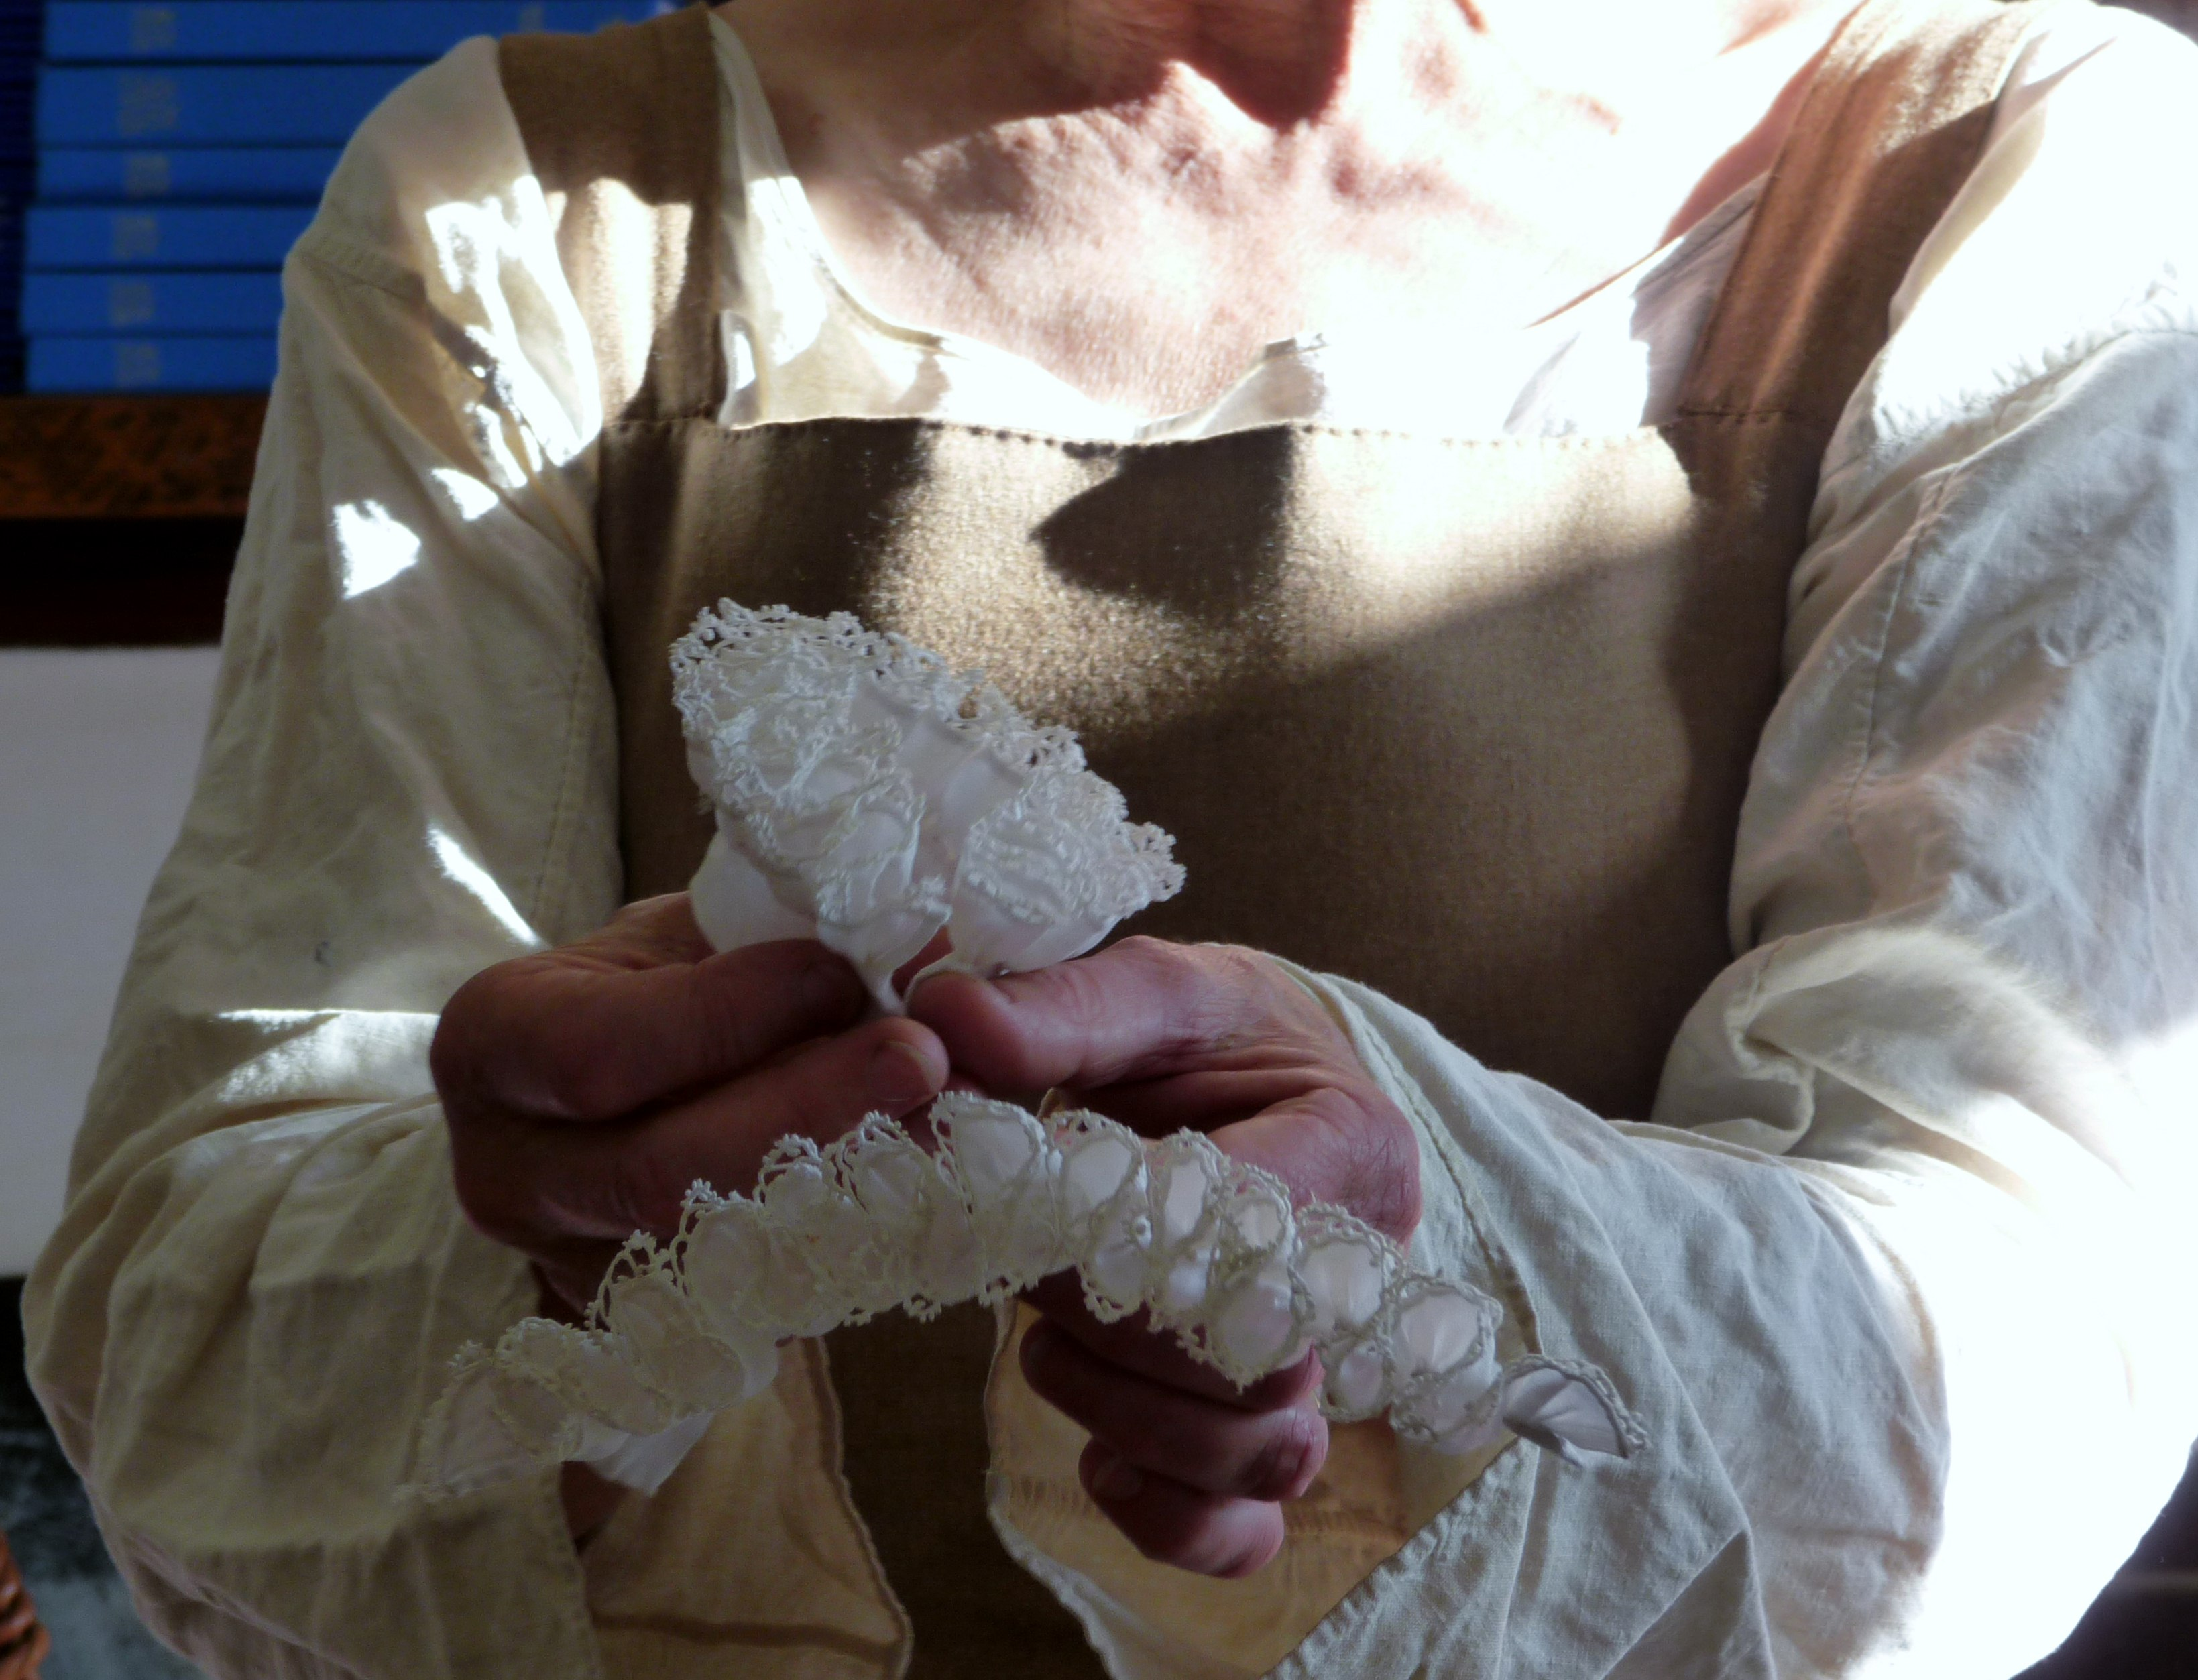 these are wrist ruffs which are edged with lace and starched